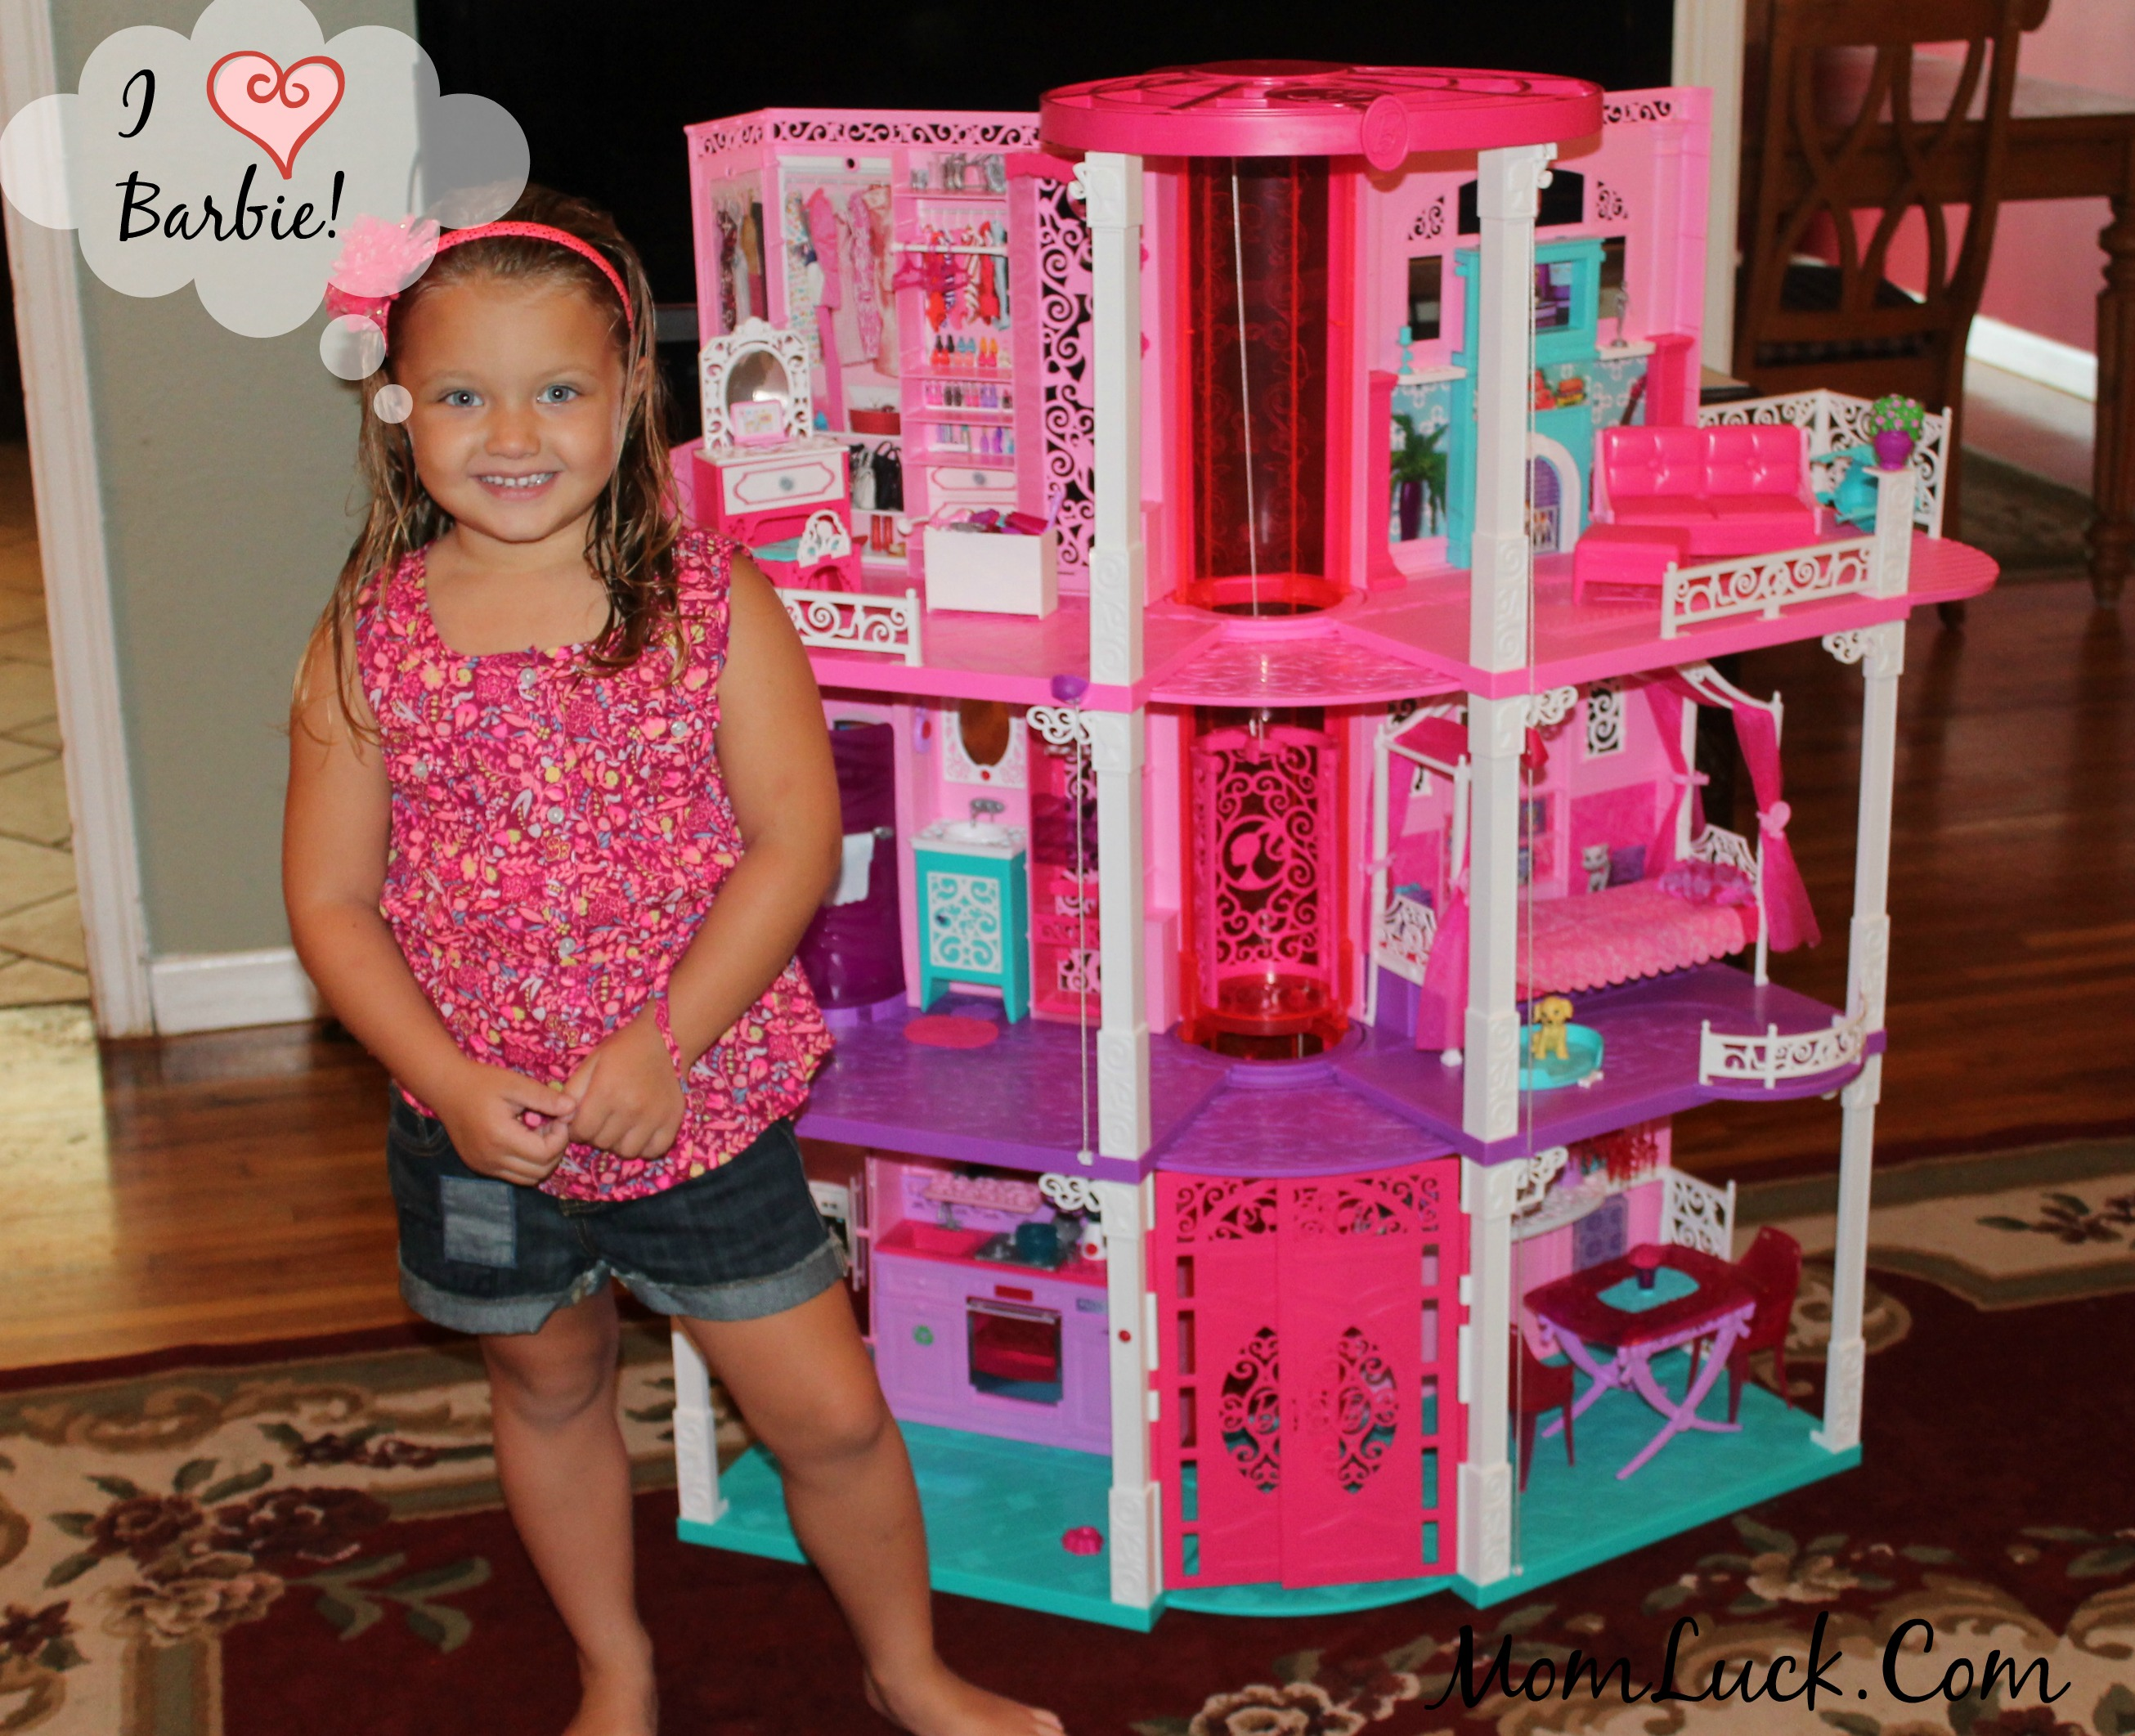 Toys For Life : Barbie and friends at walmart dreamhouse